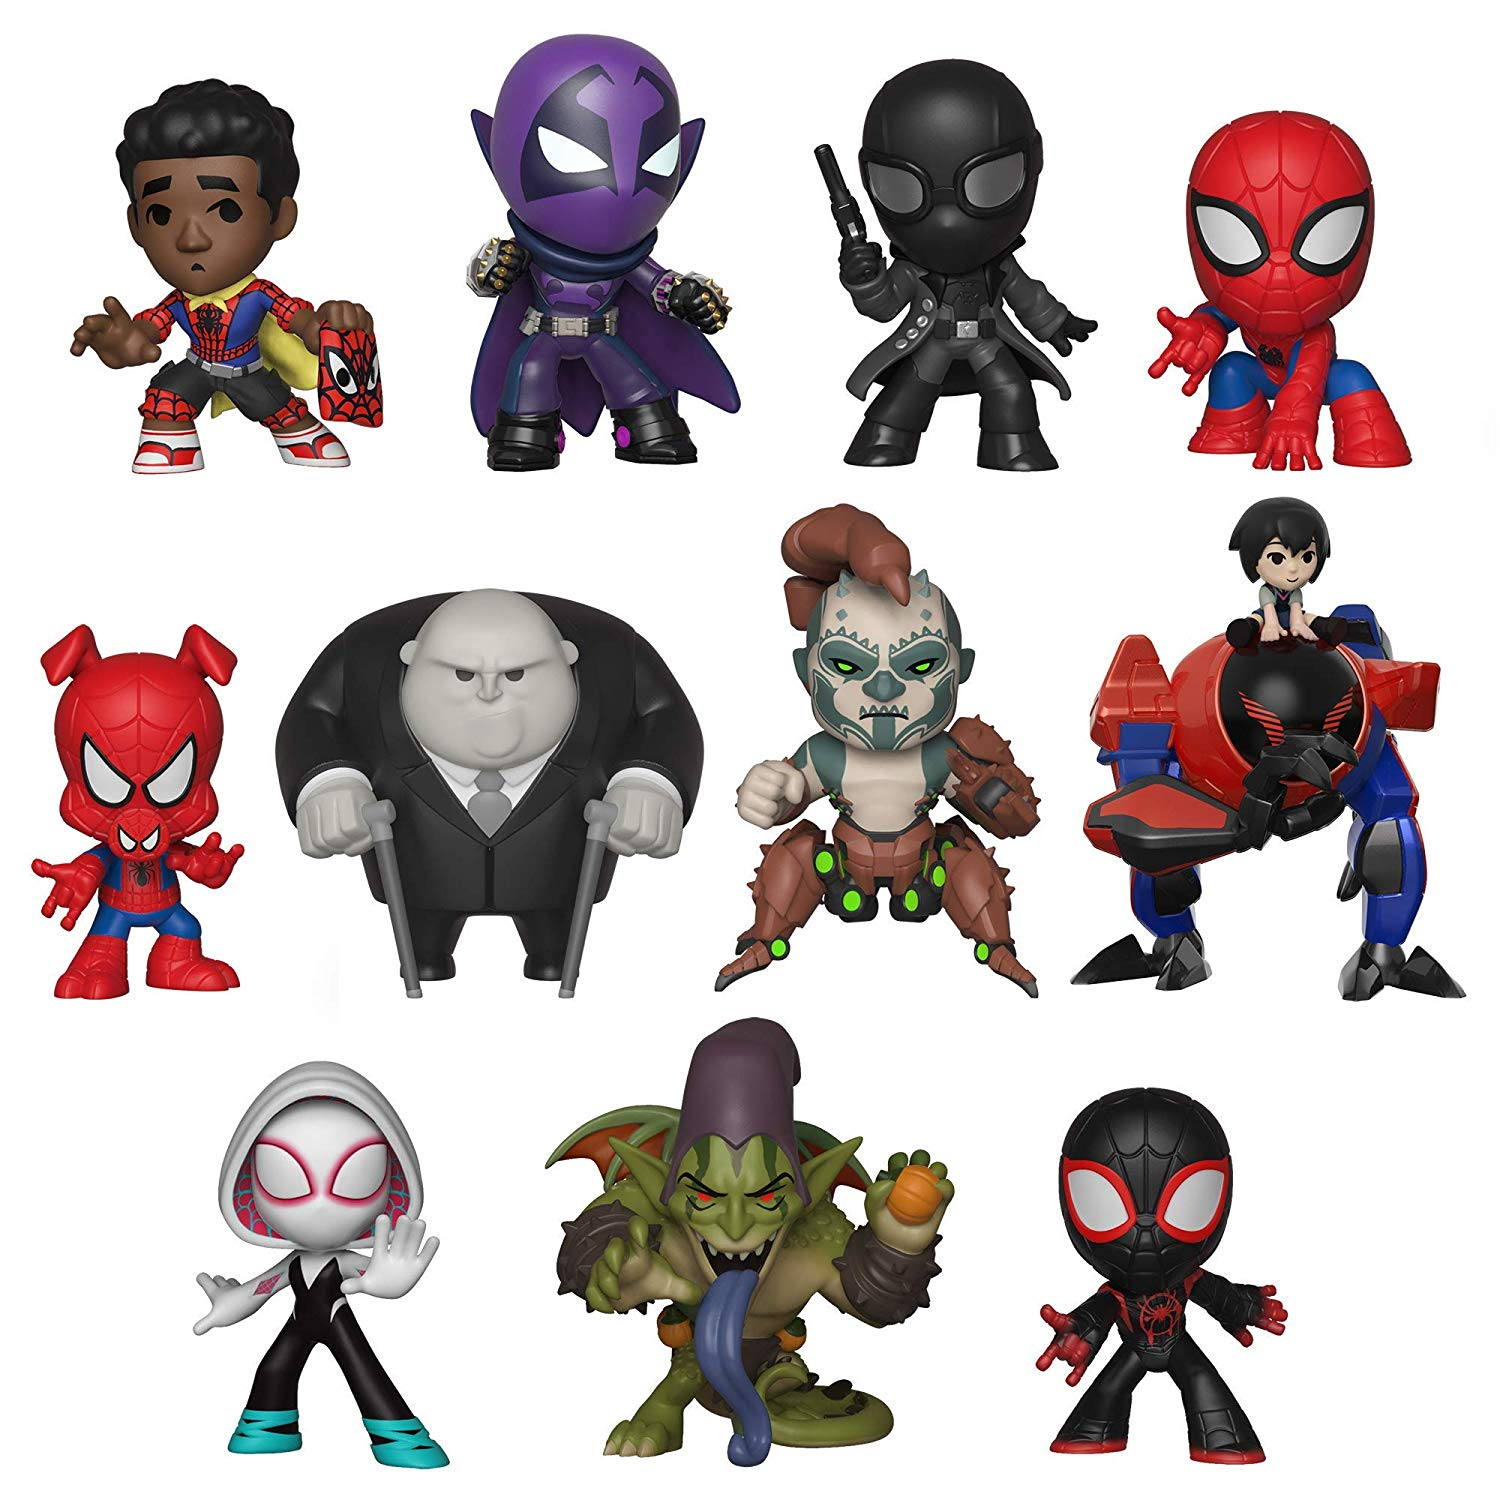 SPIDER-MAN Funko Mystery Minis Into The Spider-Verse